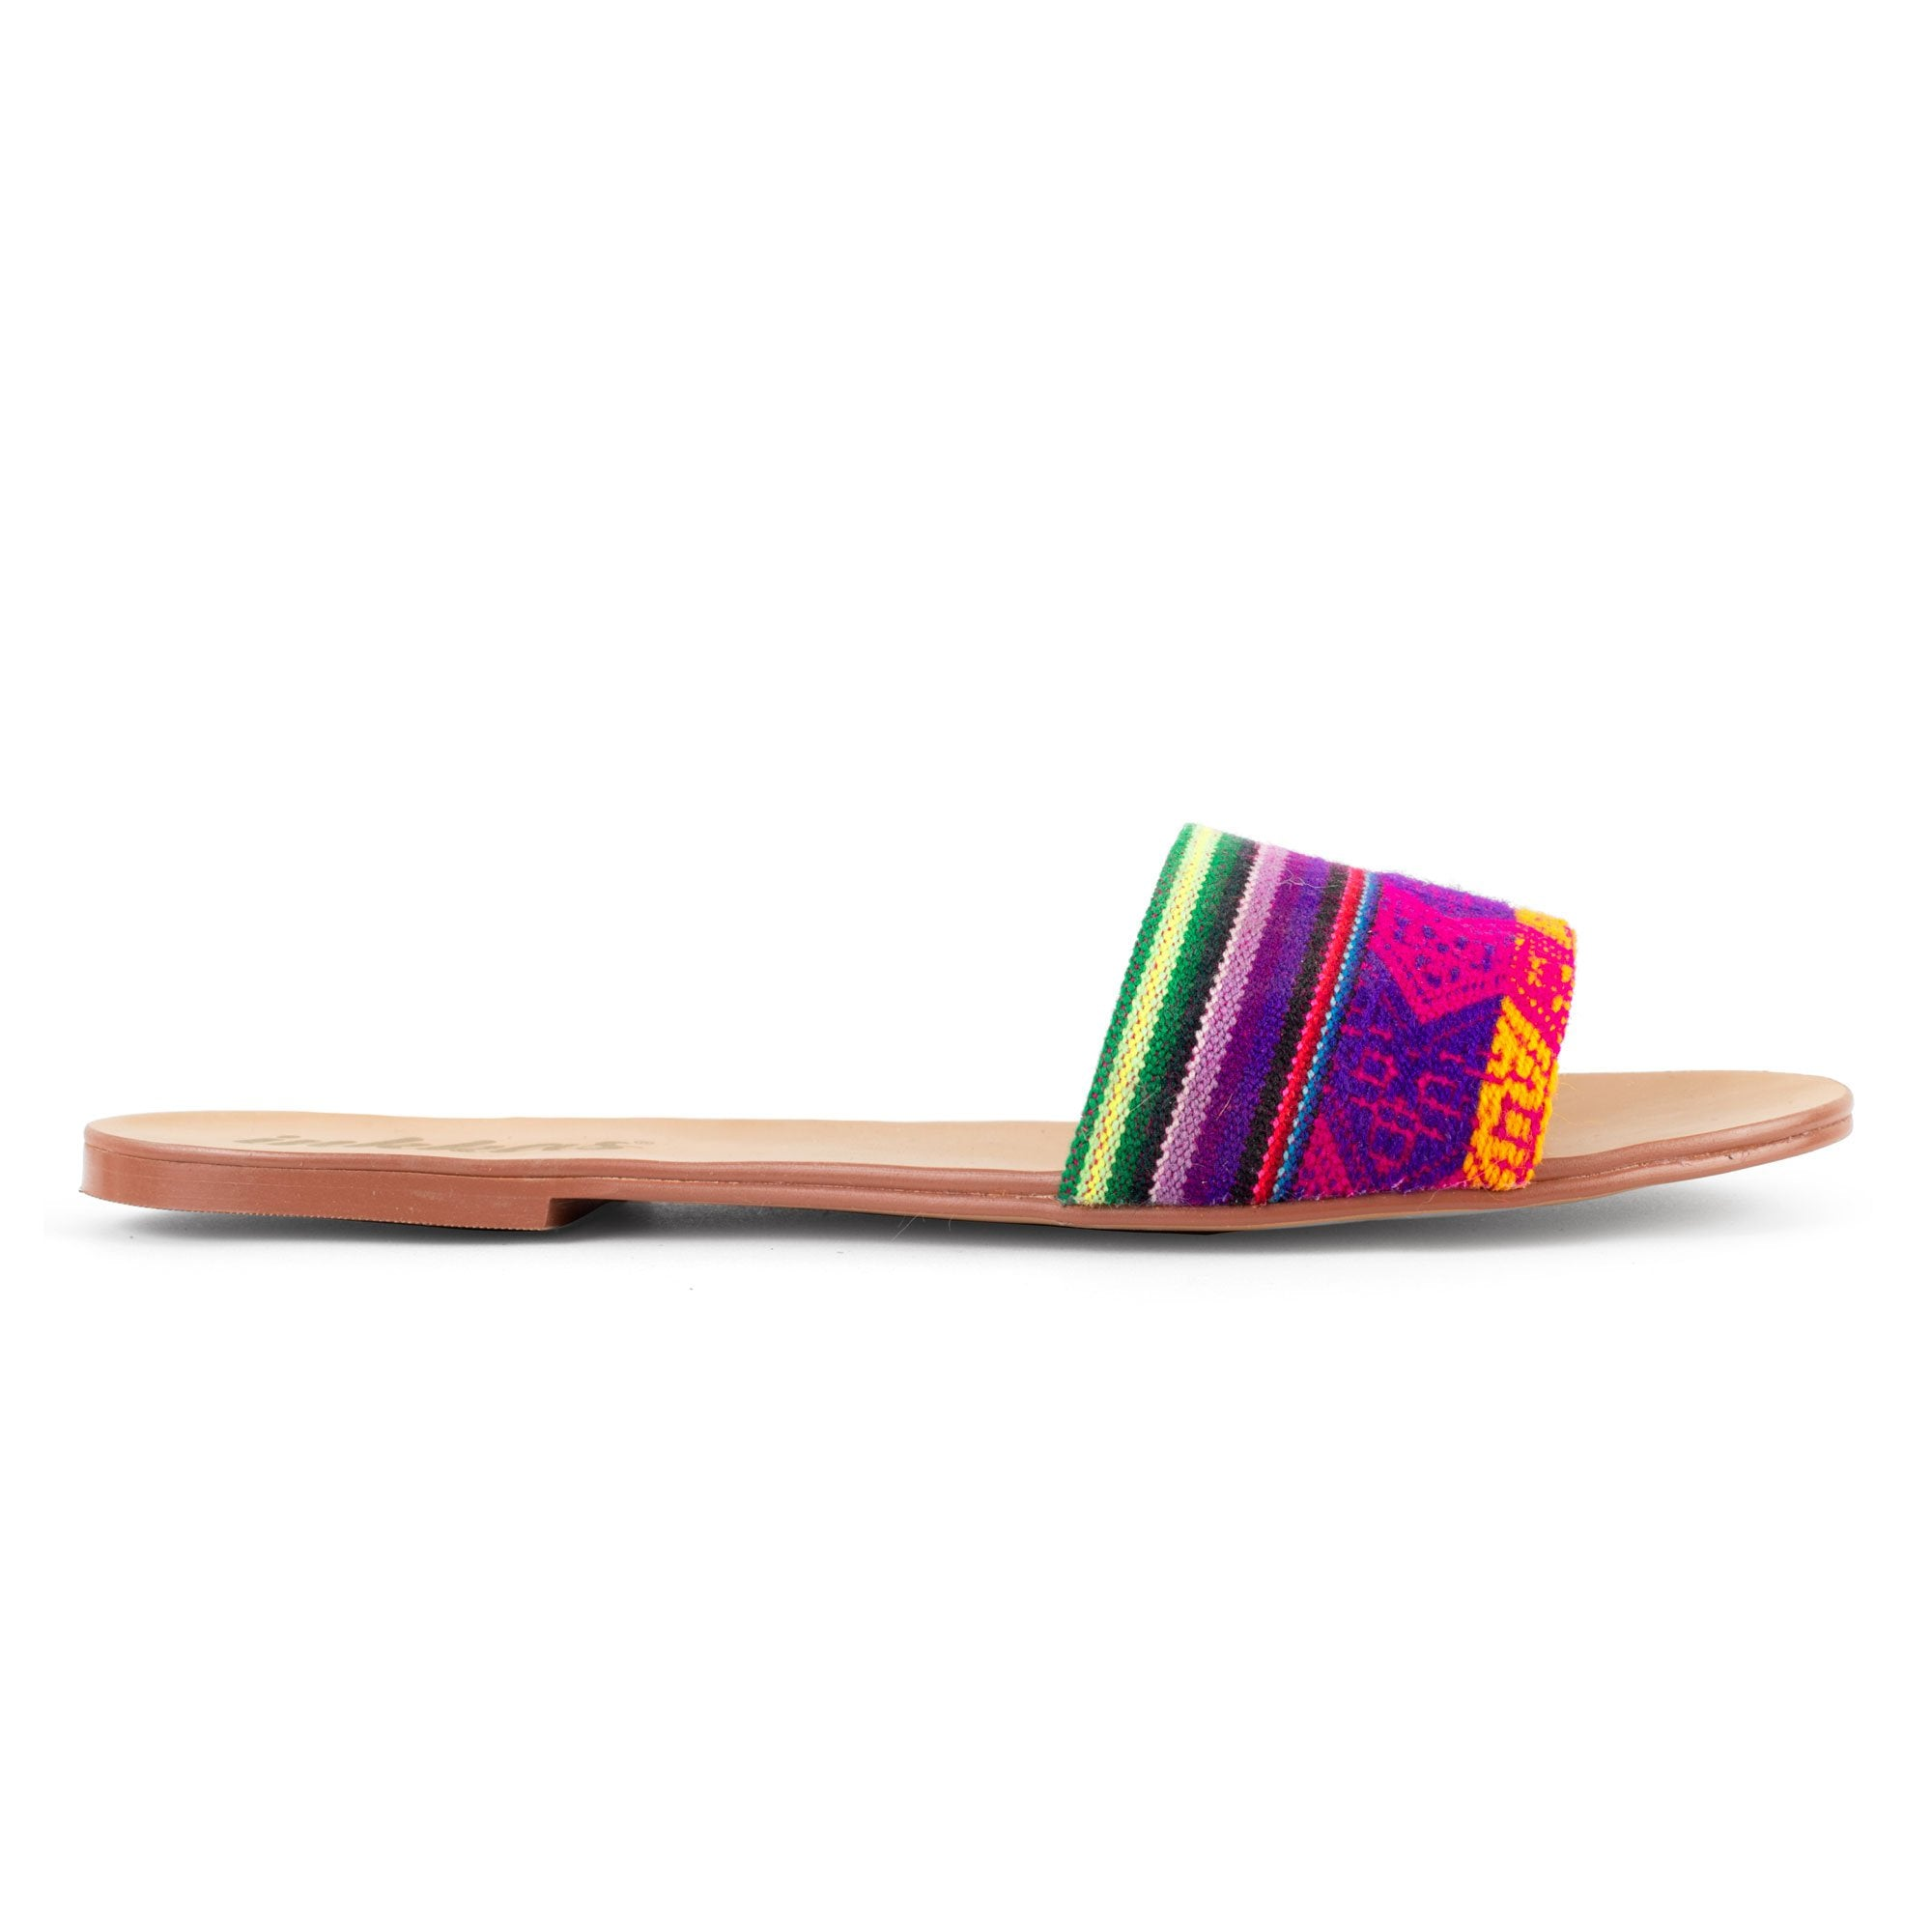 Candy Slide Sandal